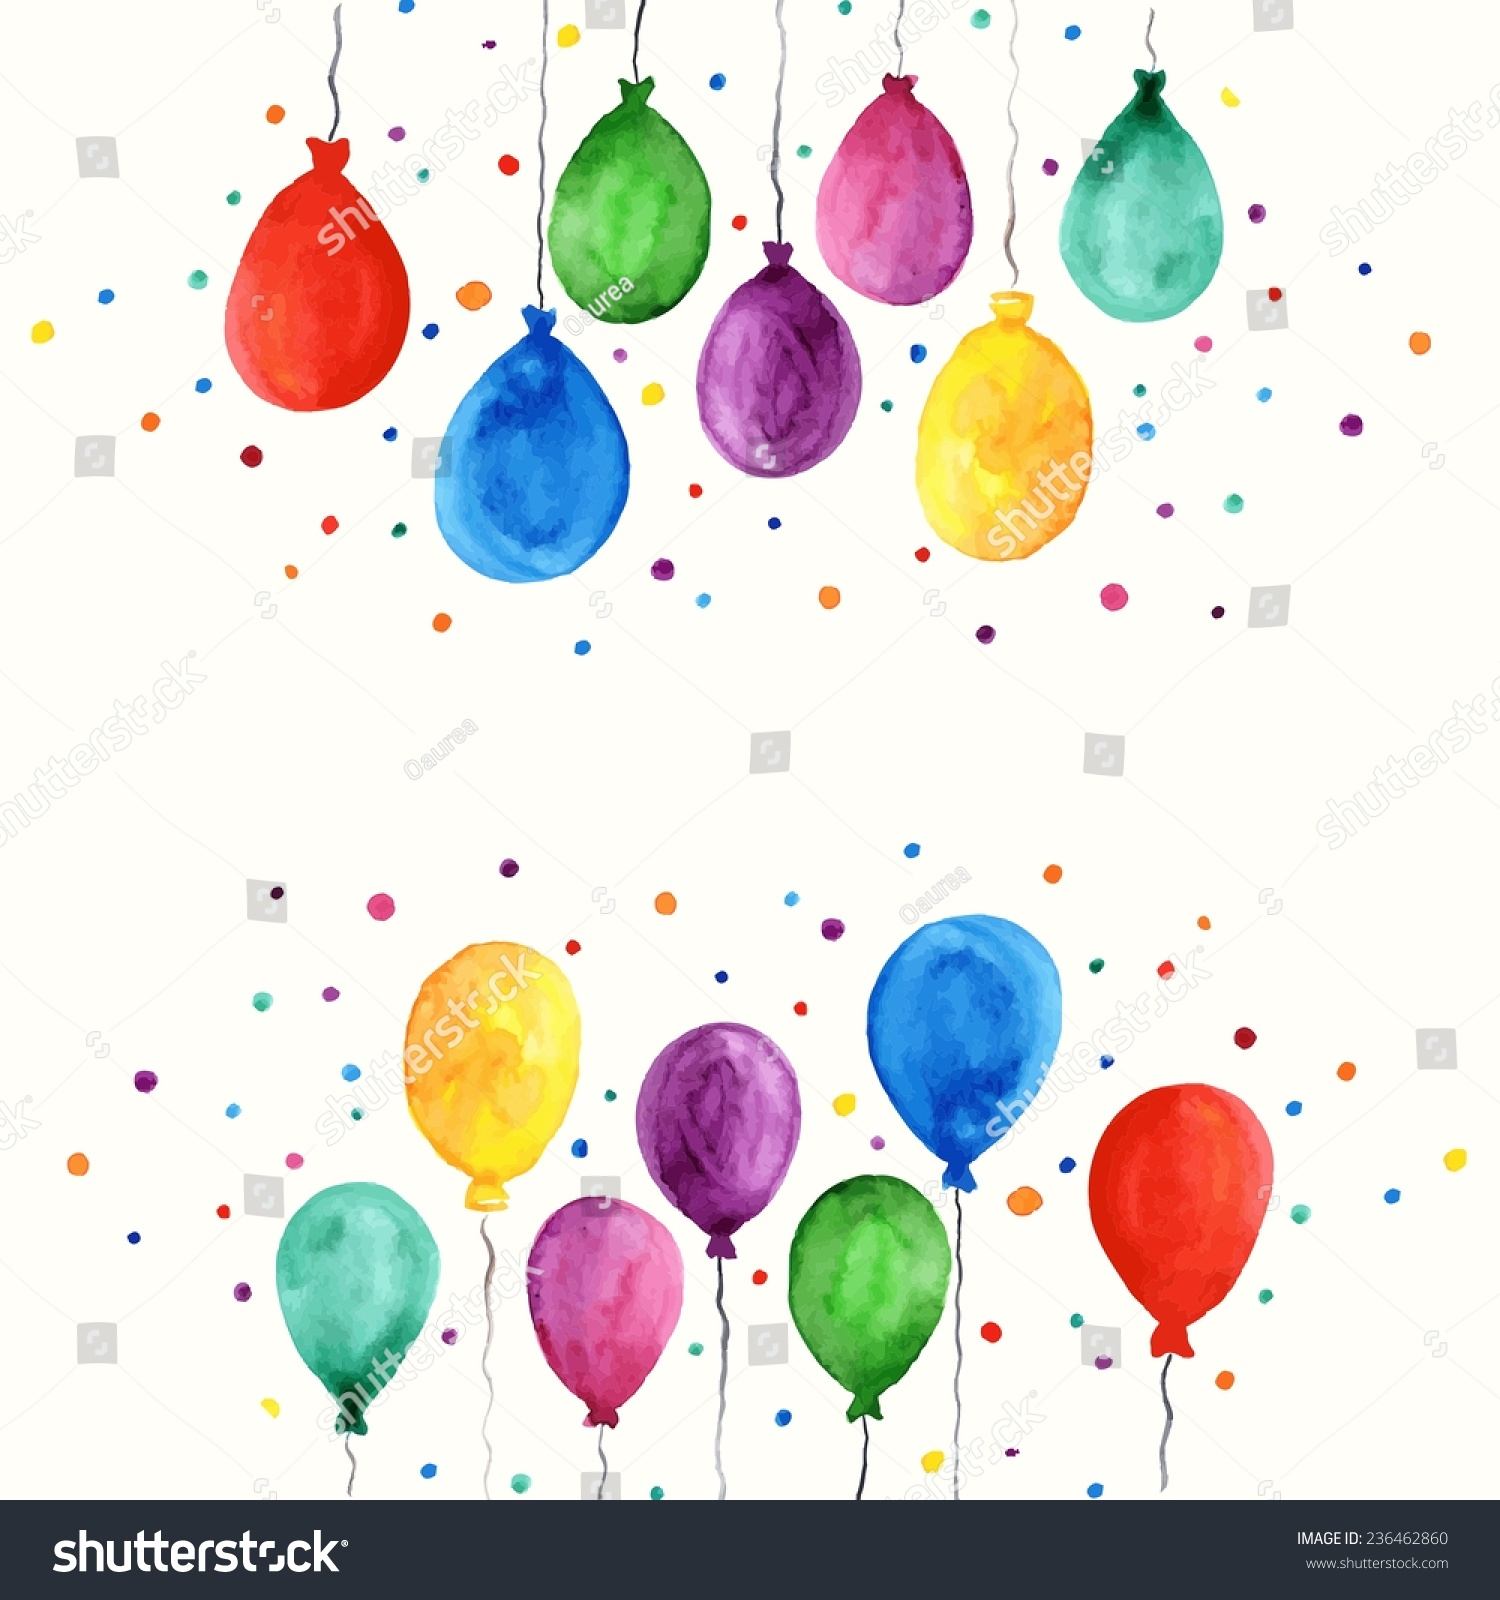 Decorate Birthday Card Image collections Free Birthday Cards